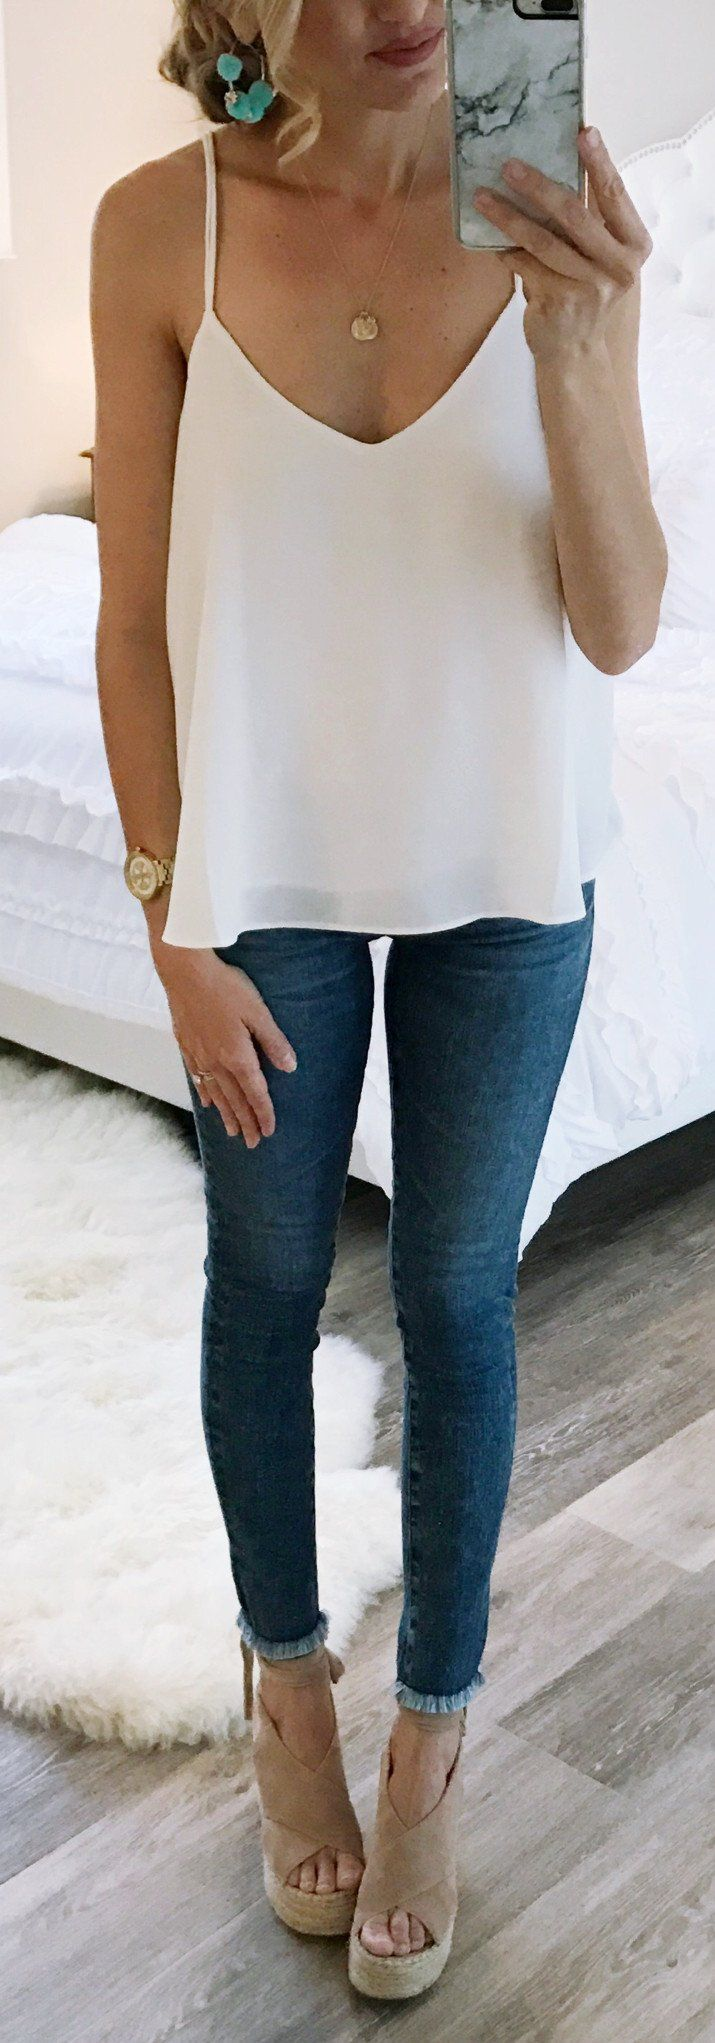 With what to wear beige sandals